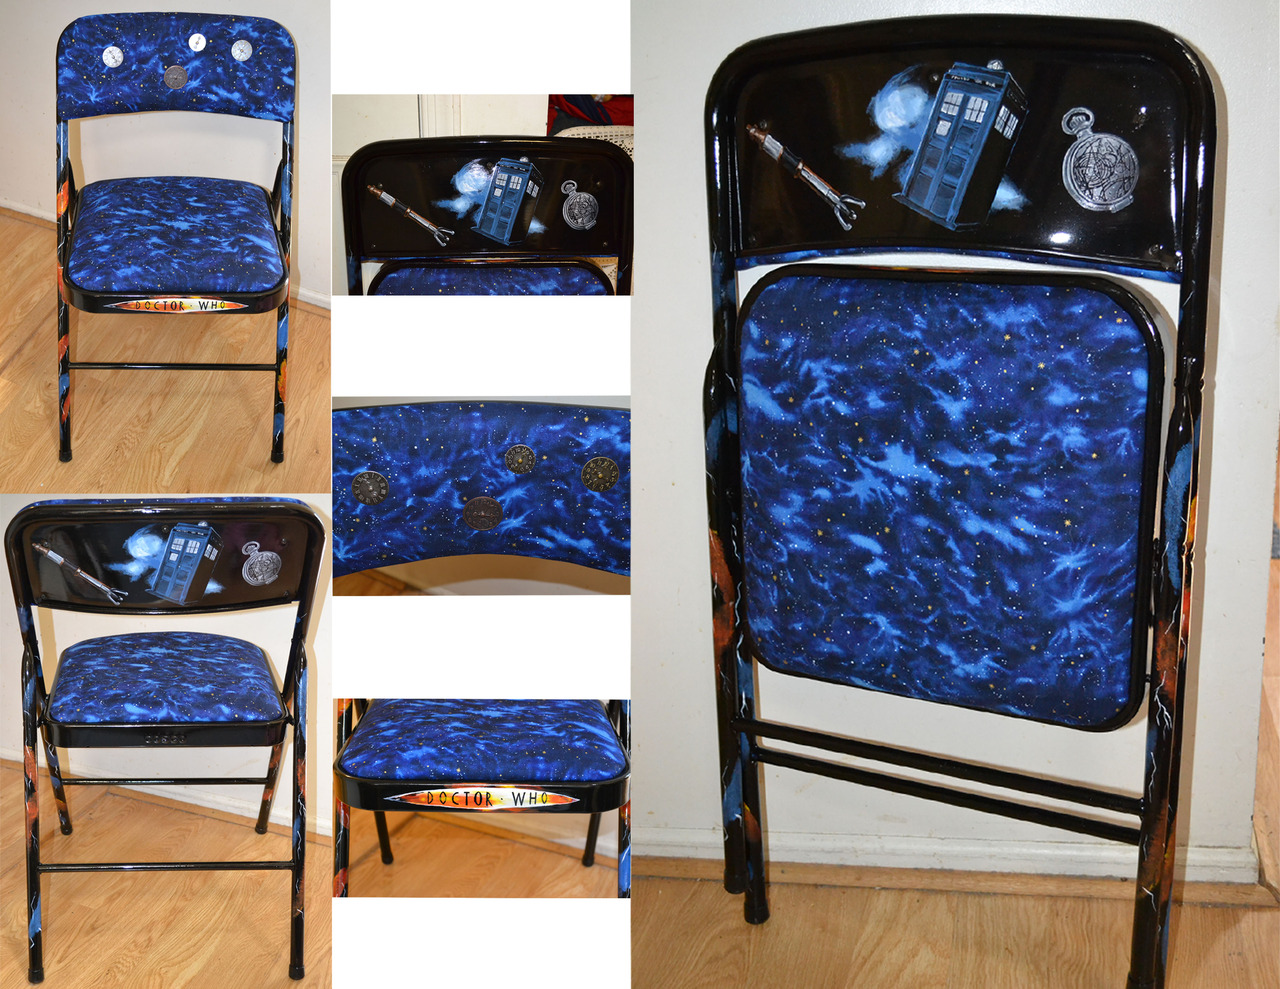 folding chair jokes best place to buy office chairs pin doctor who bedroom wallpaper image search results on